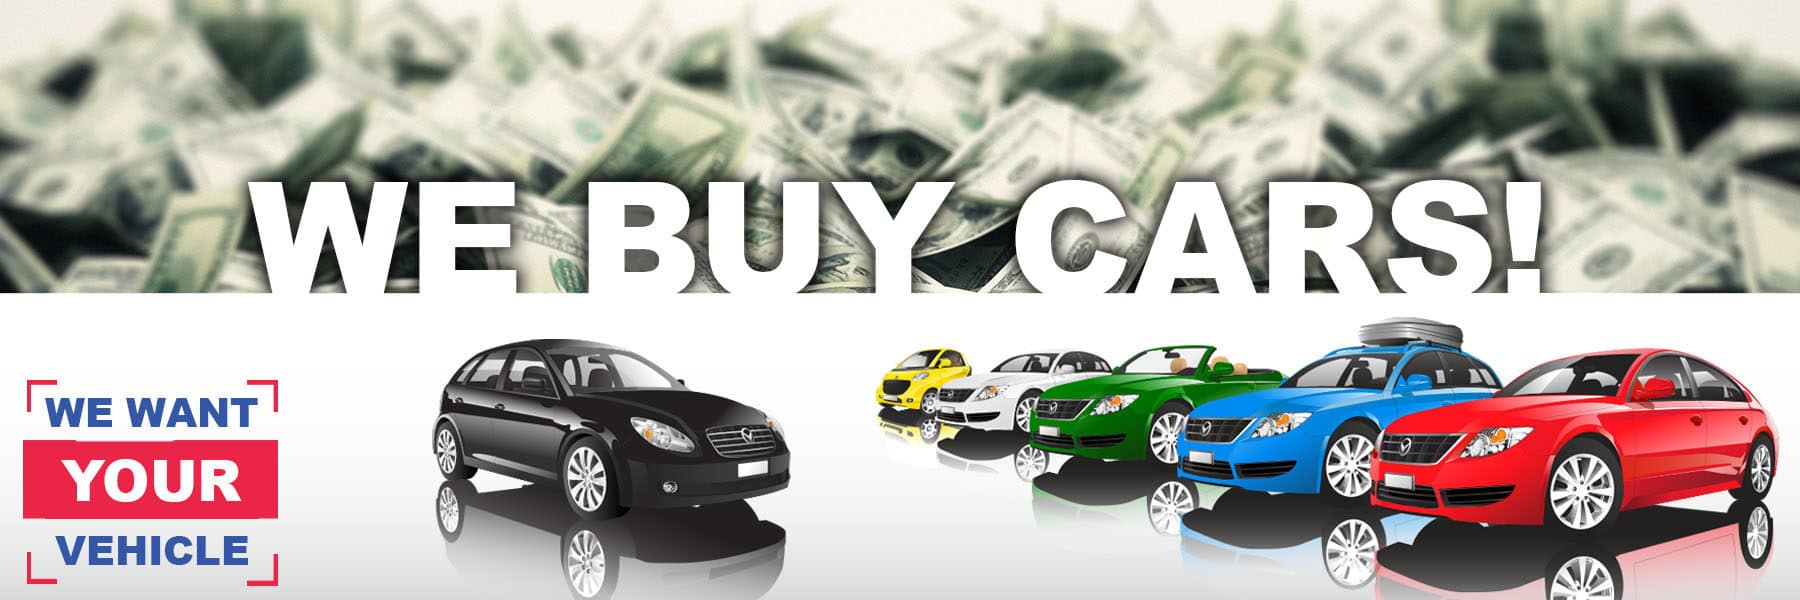 Empire Littleton Nissan Buys Cars and Pays Cash For Your Trade